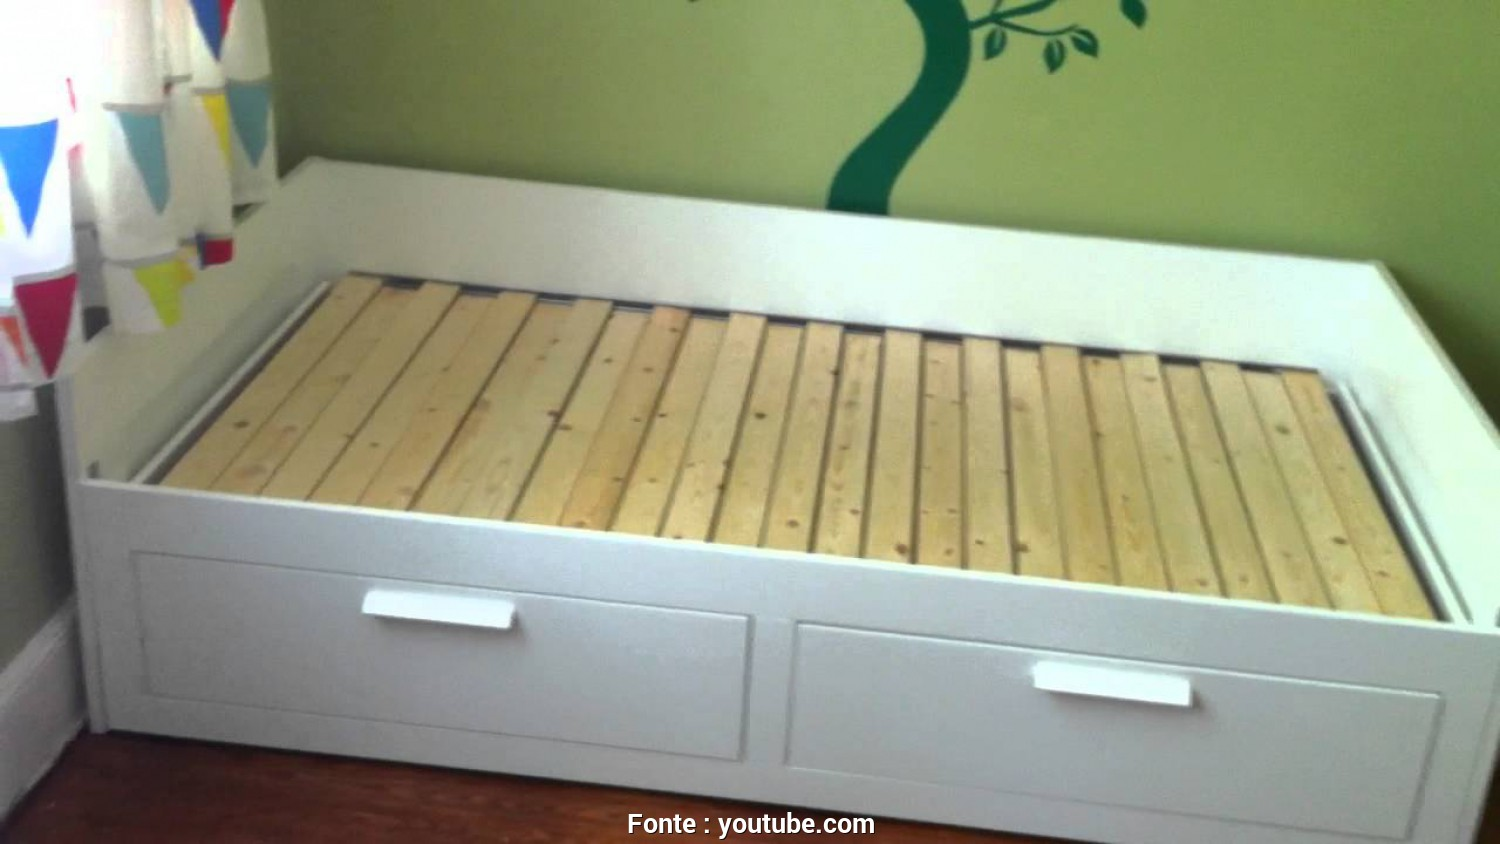 Brimnes Letto Video, Bellissima Ikea Brimnes Daybed Assembly Service In DC MD VA By Dave Song Of Furniture Assembly Experts, YouTube